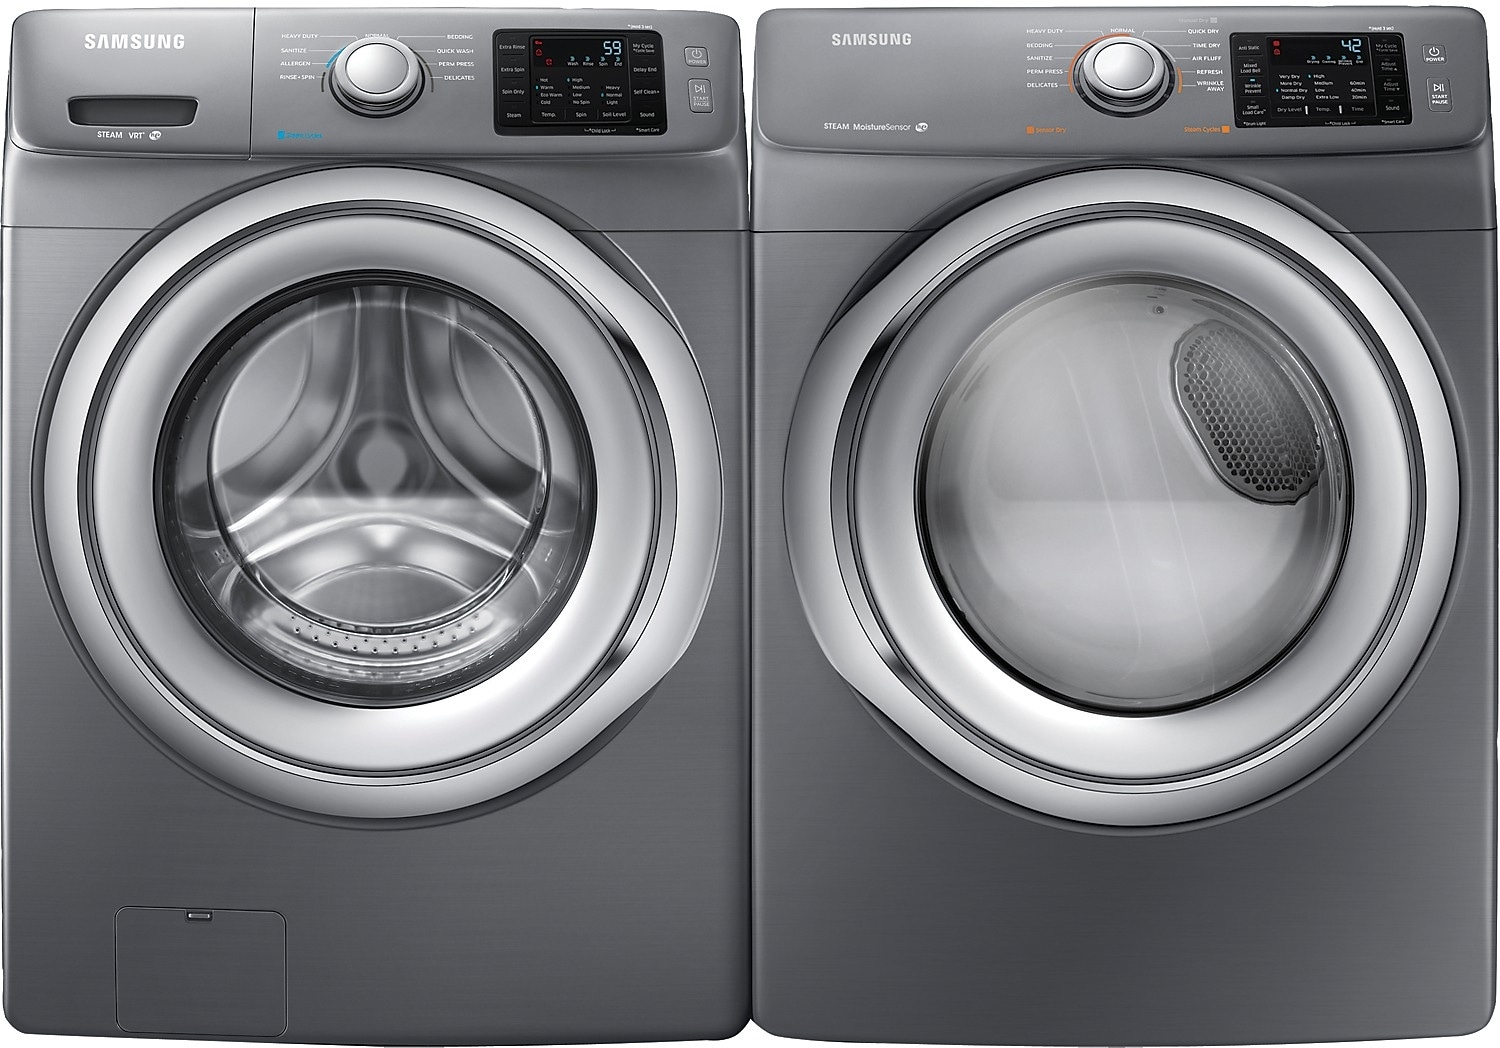 Samsung 4.8 Cu. Ft. Front-Load Washer and 7.5 Cu. Ft. Electric Dryer - Platinum : The Brick